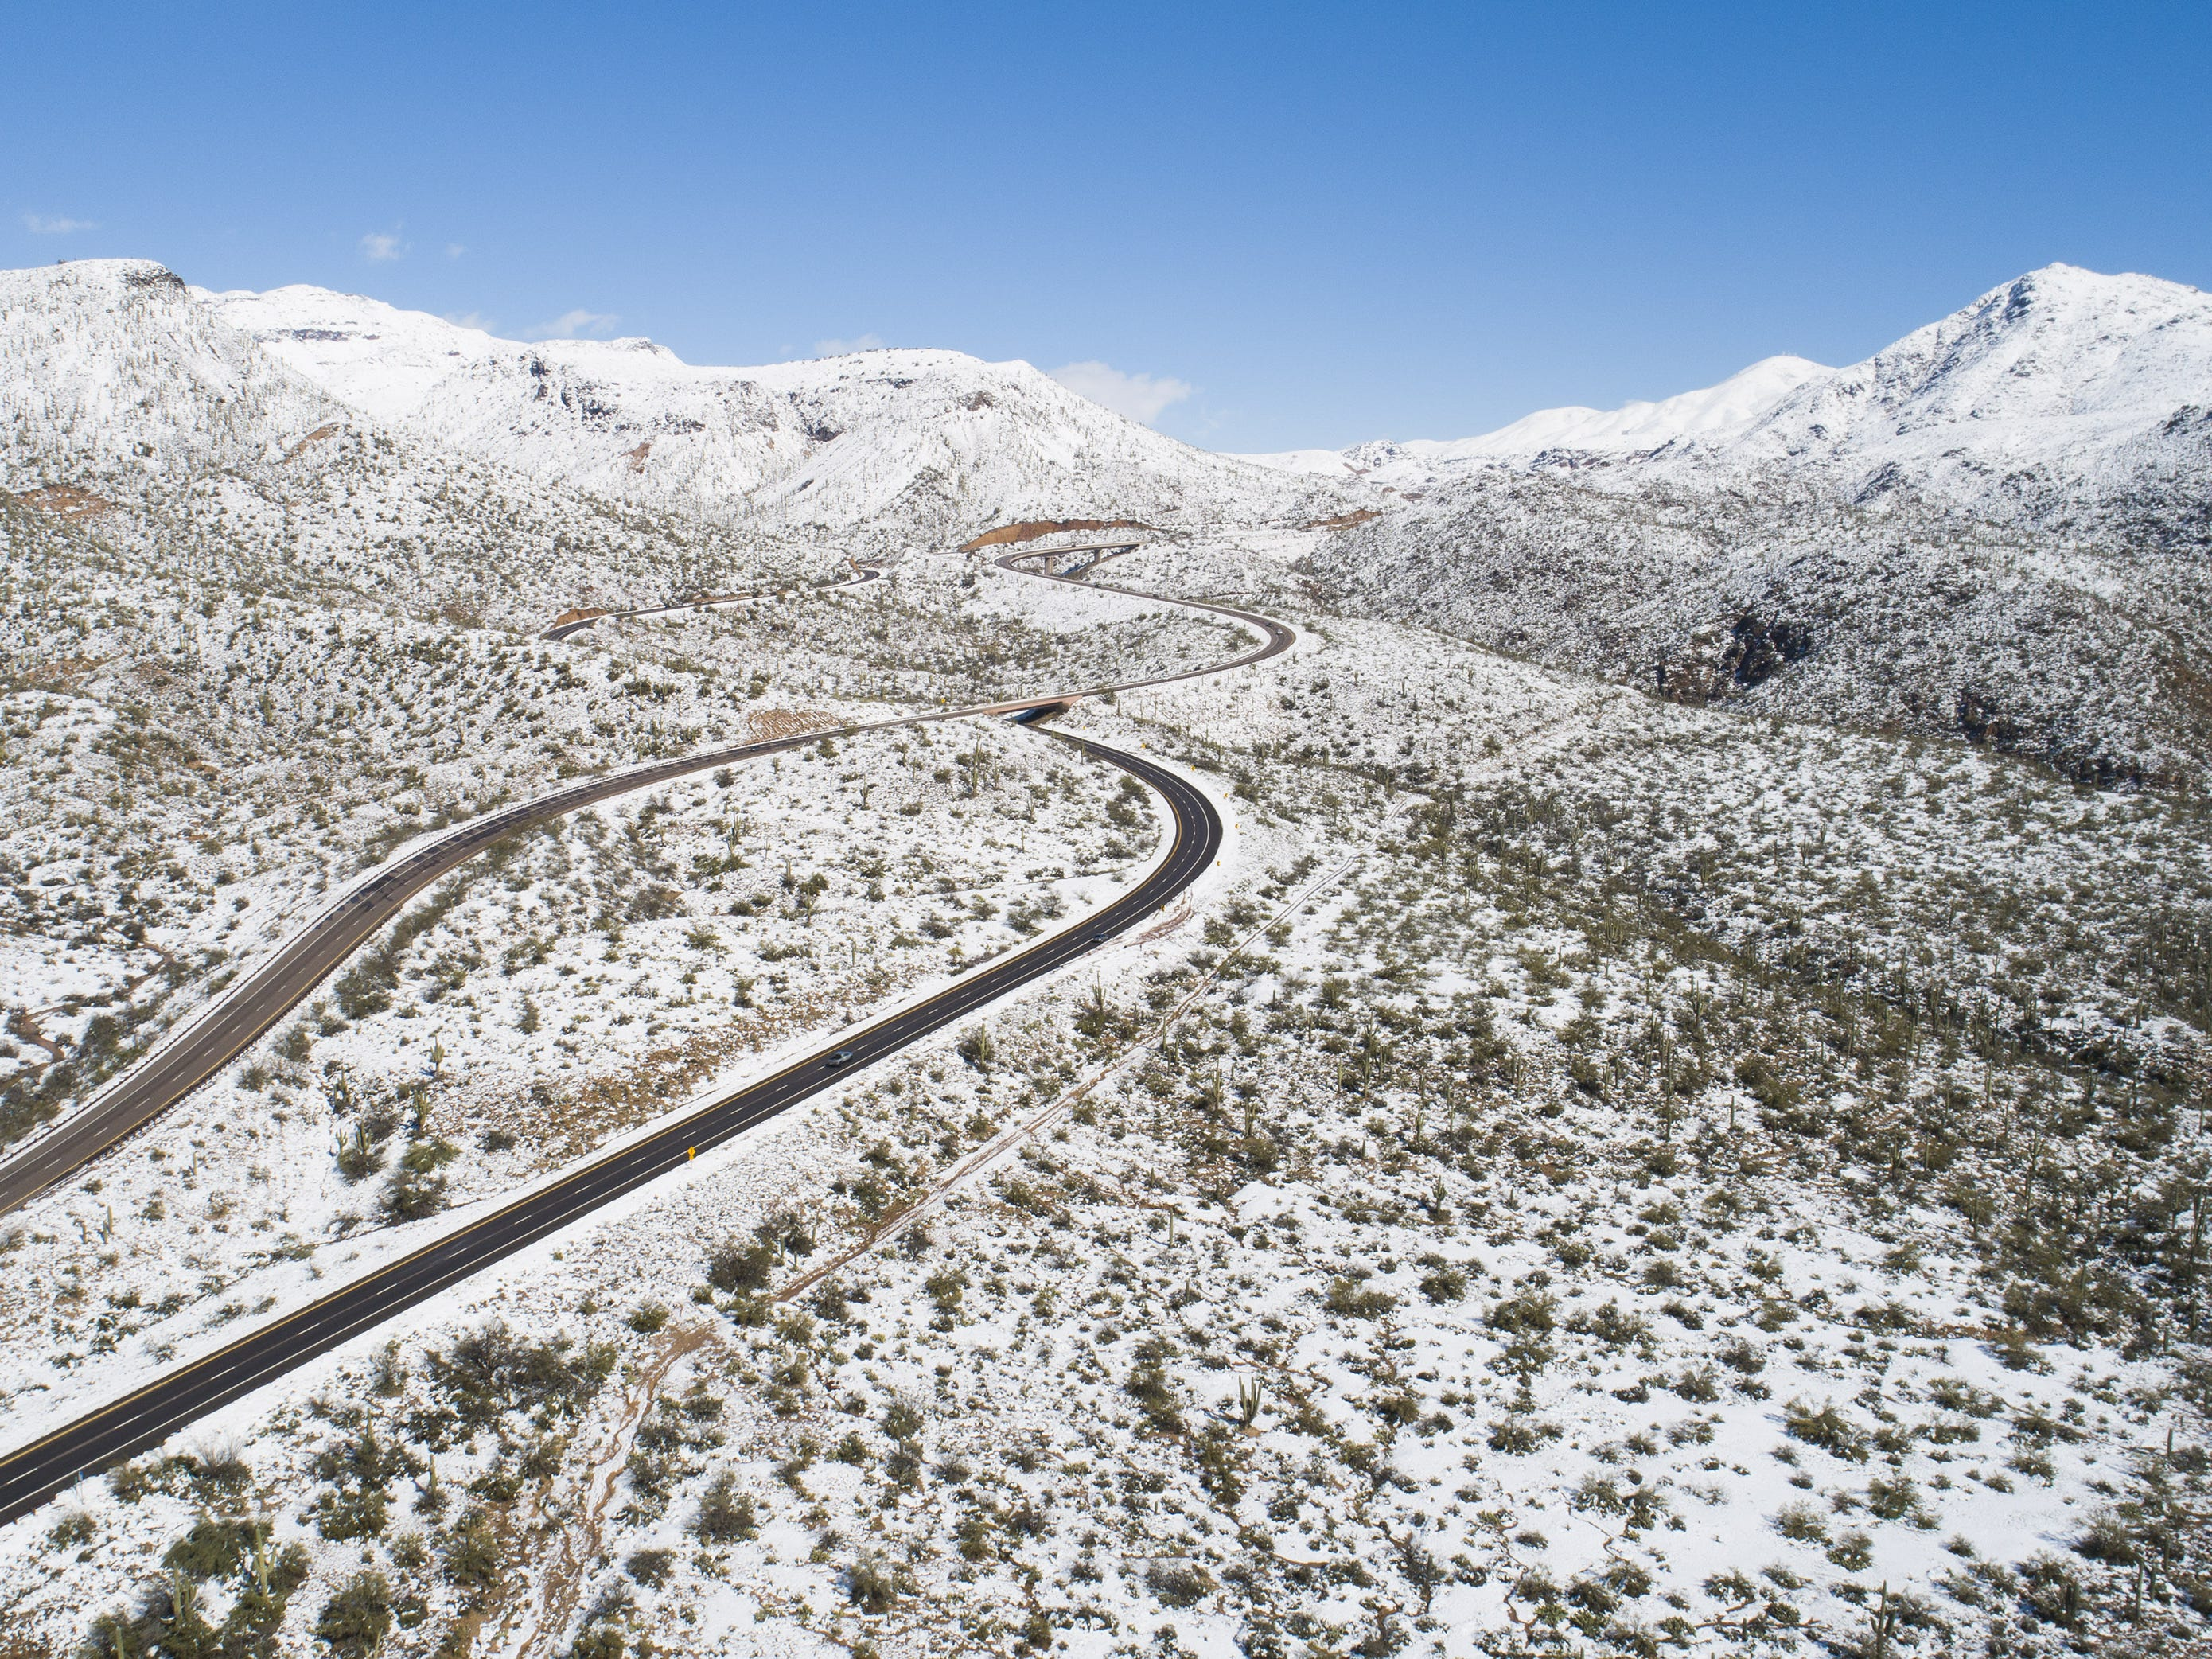 Cars drive along State Route 87 as snow covers the desert in the Tonto National Forest near Sunflower, Ariz. Feb. 23, 2019.